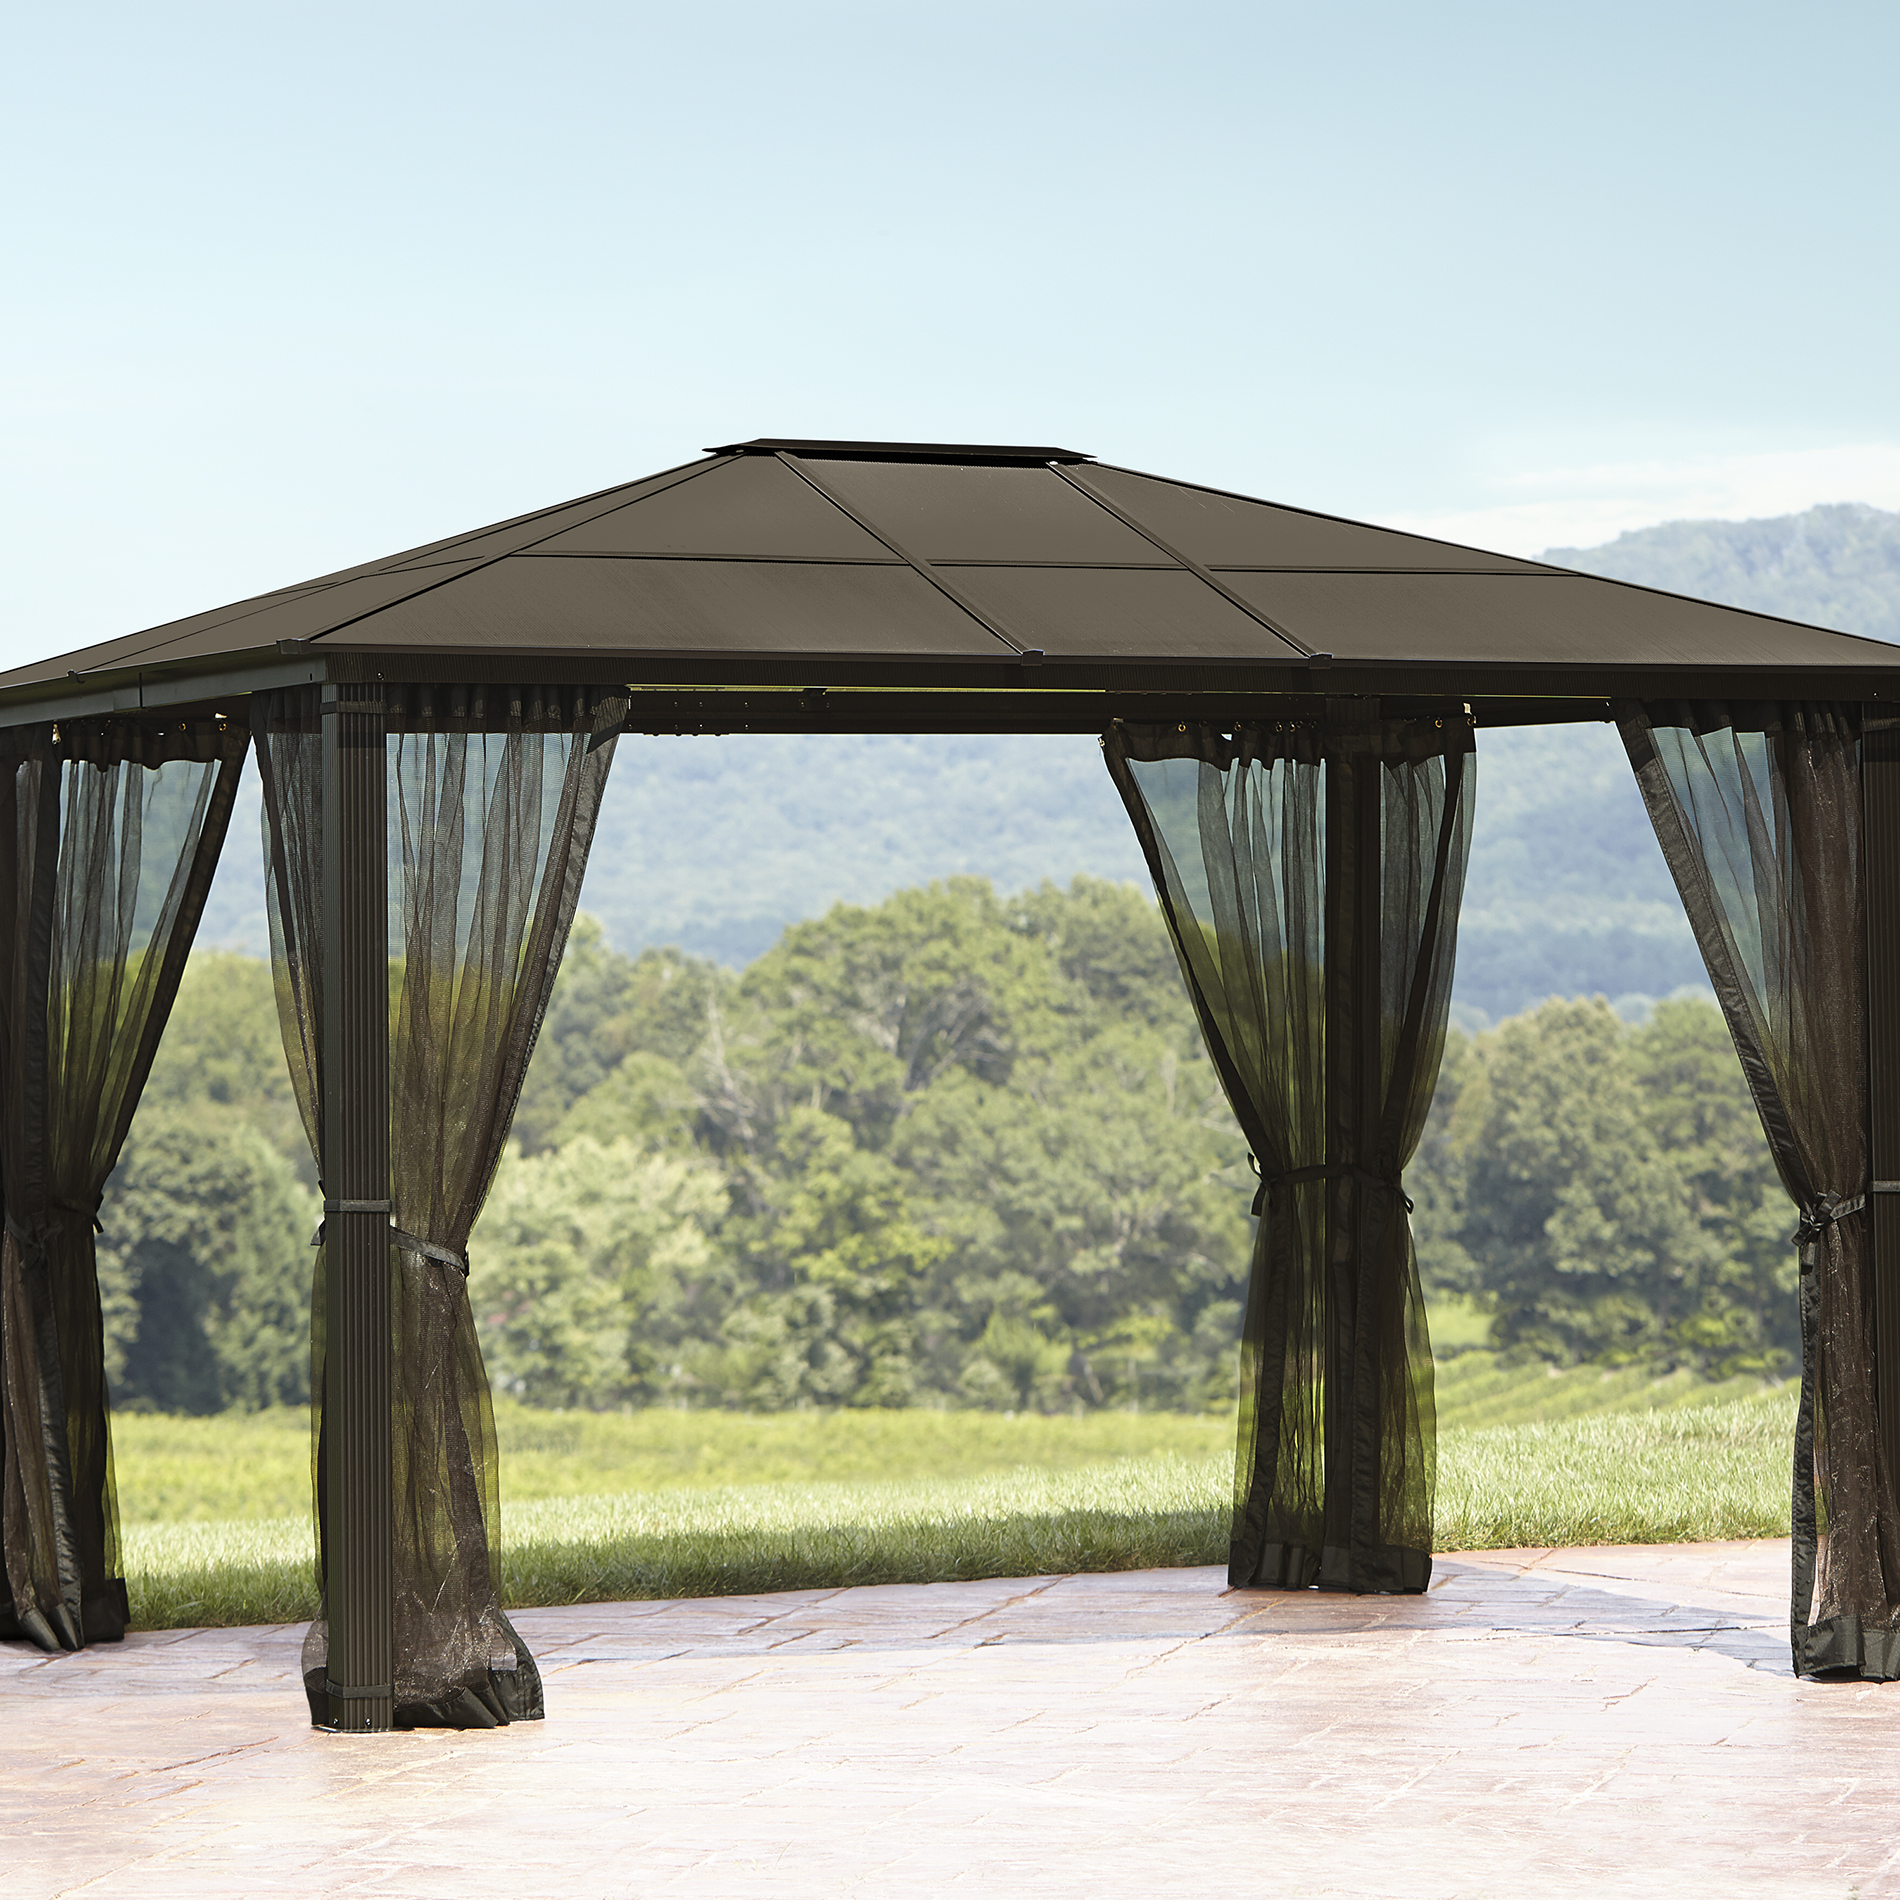 Screened Gazebo | Screen Tent Gazebo | Screened Pergola